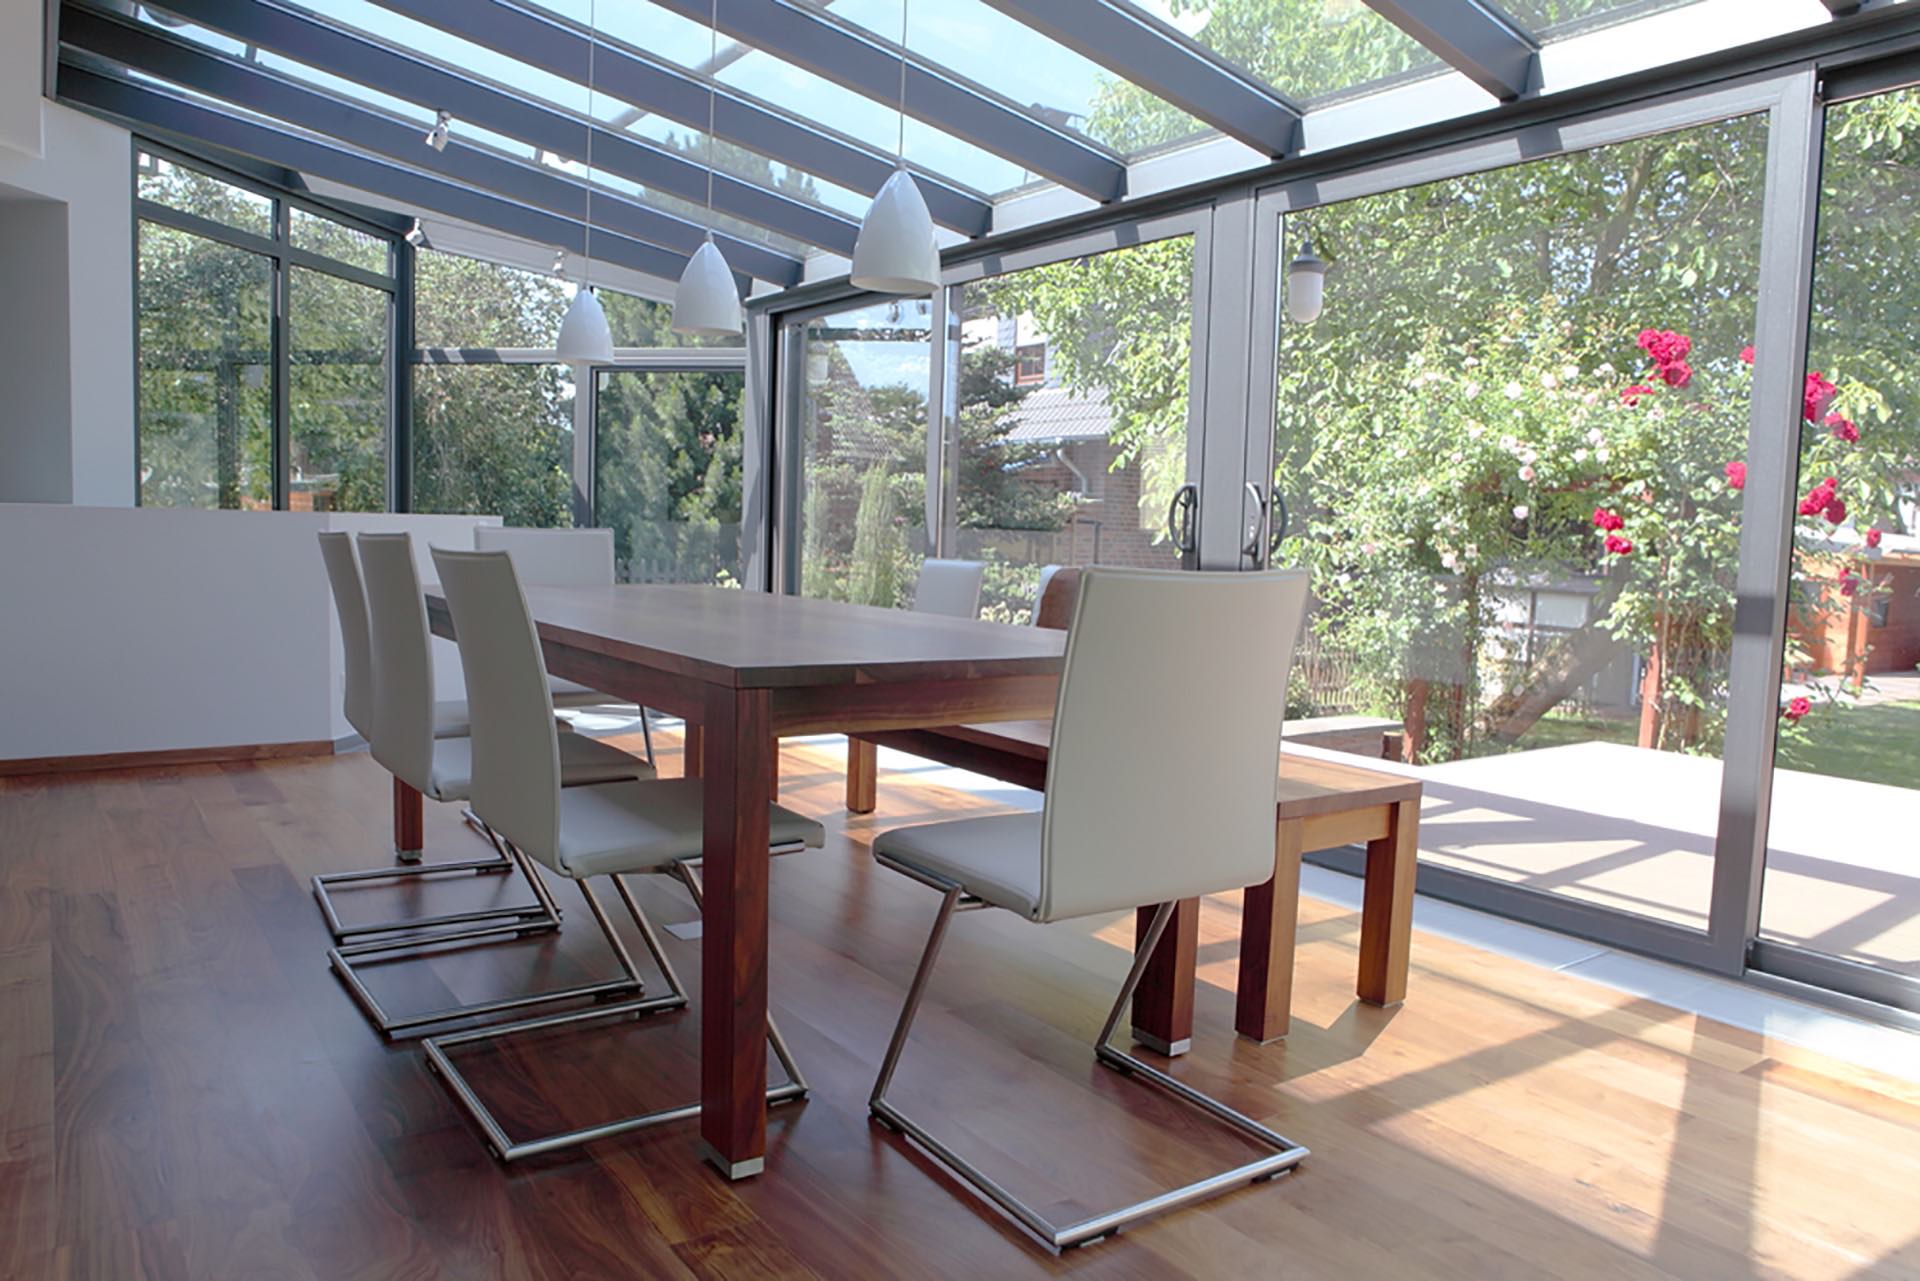 uPVC Lean-to Conservatory Prices Wiltshire